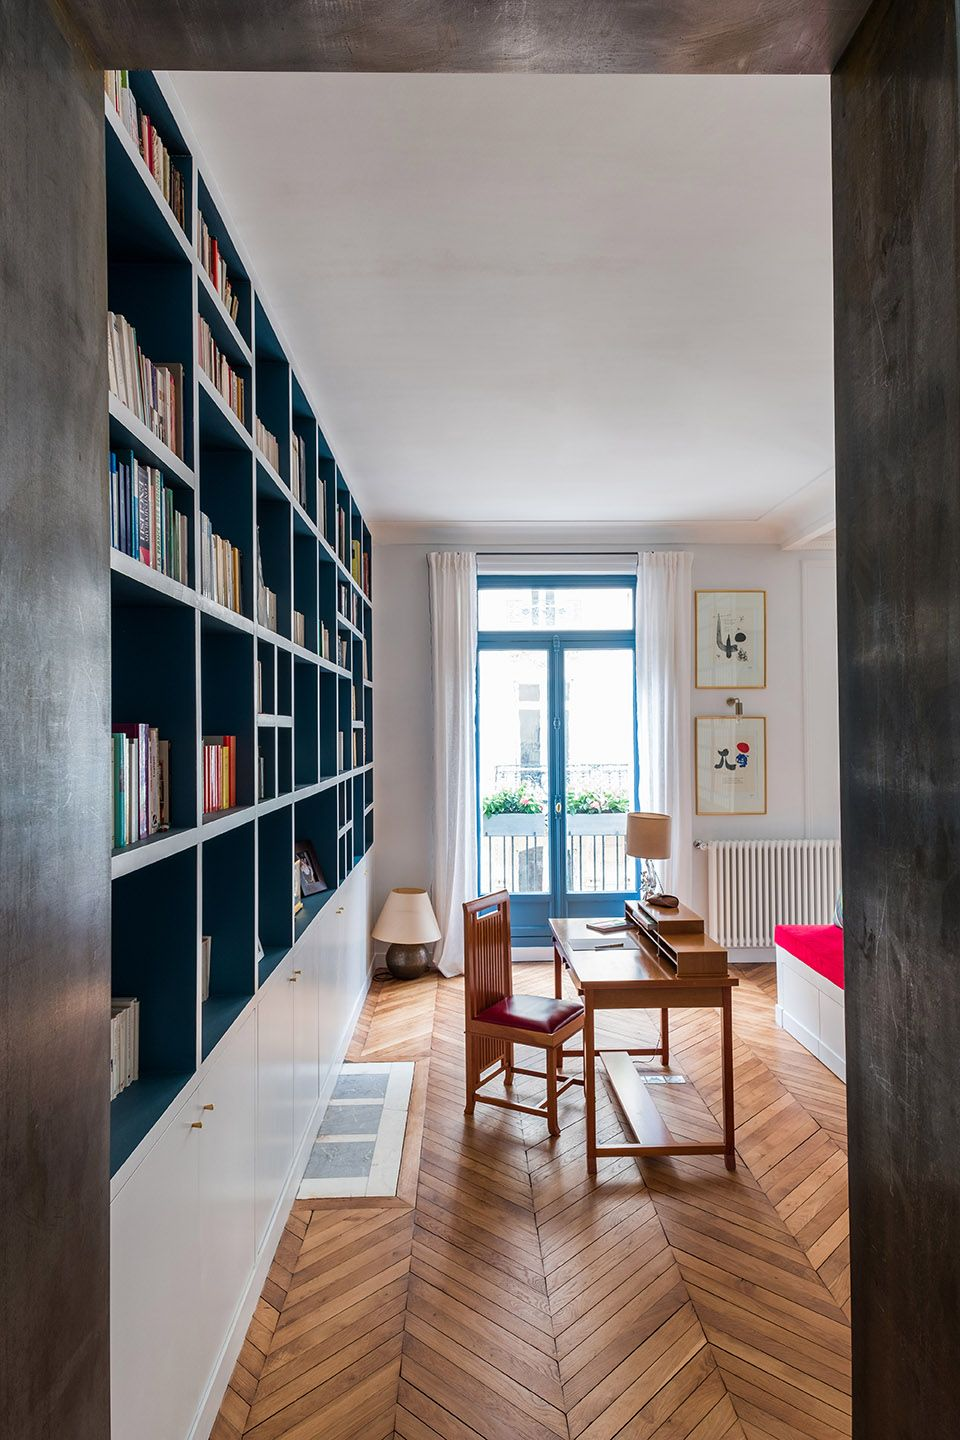 biblioth que integr e dans le bureau edouard fournier gcg architectes edouard fournier paris. Black Bedroom Furniture Sets. Home Design Ideas